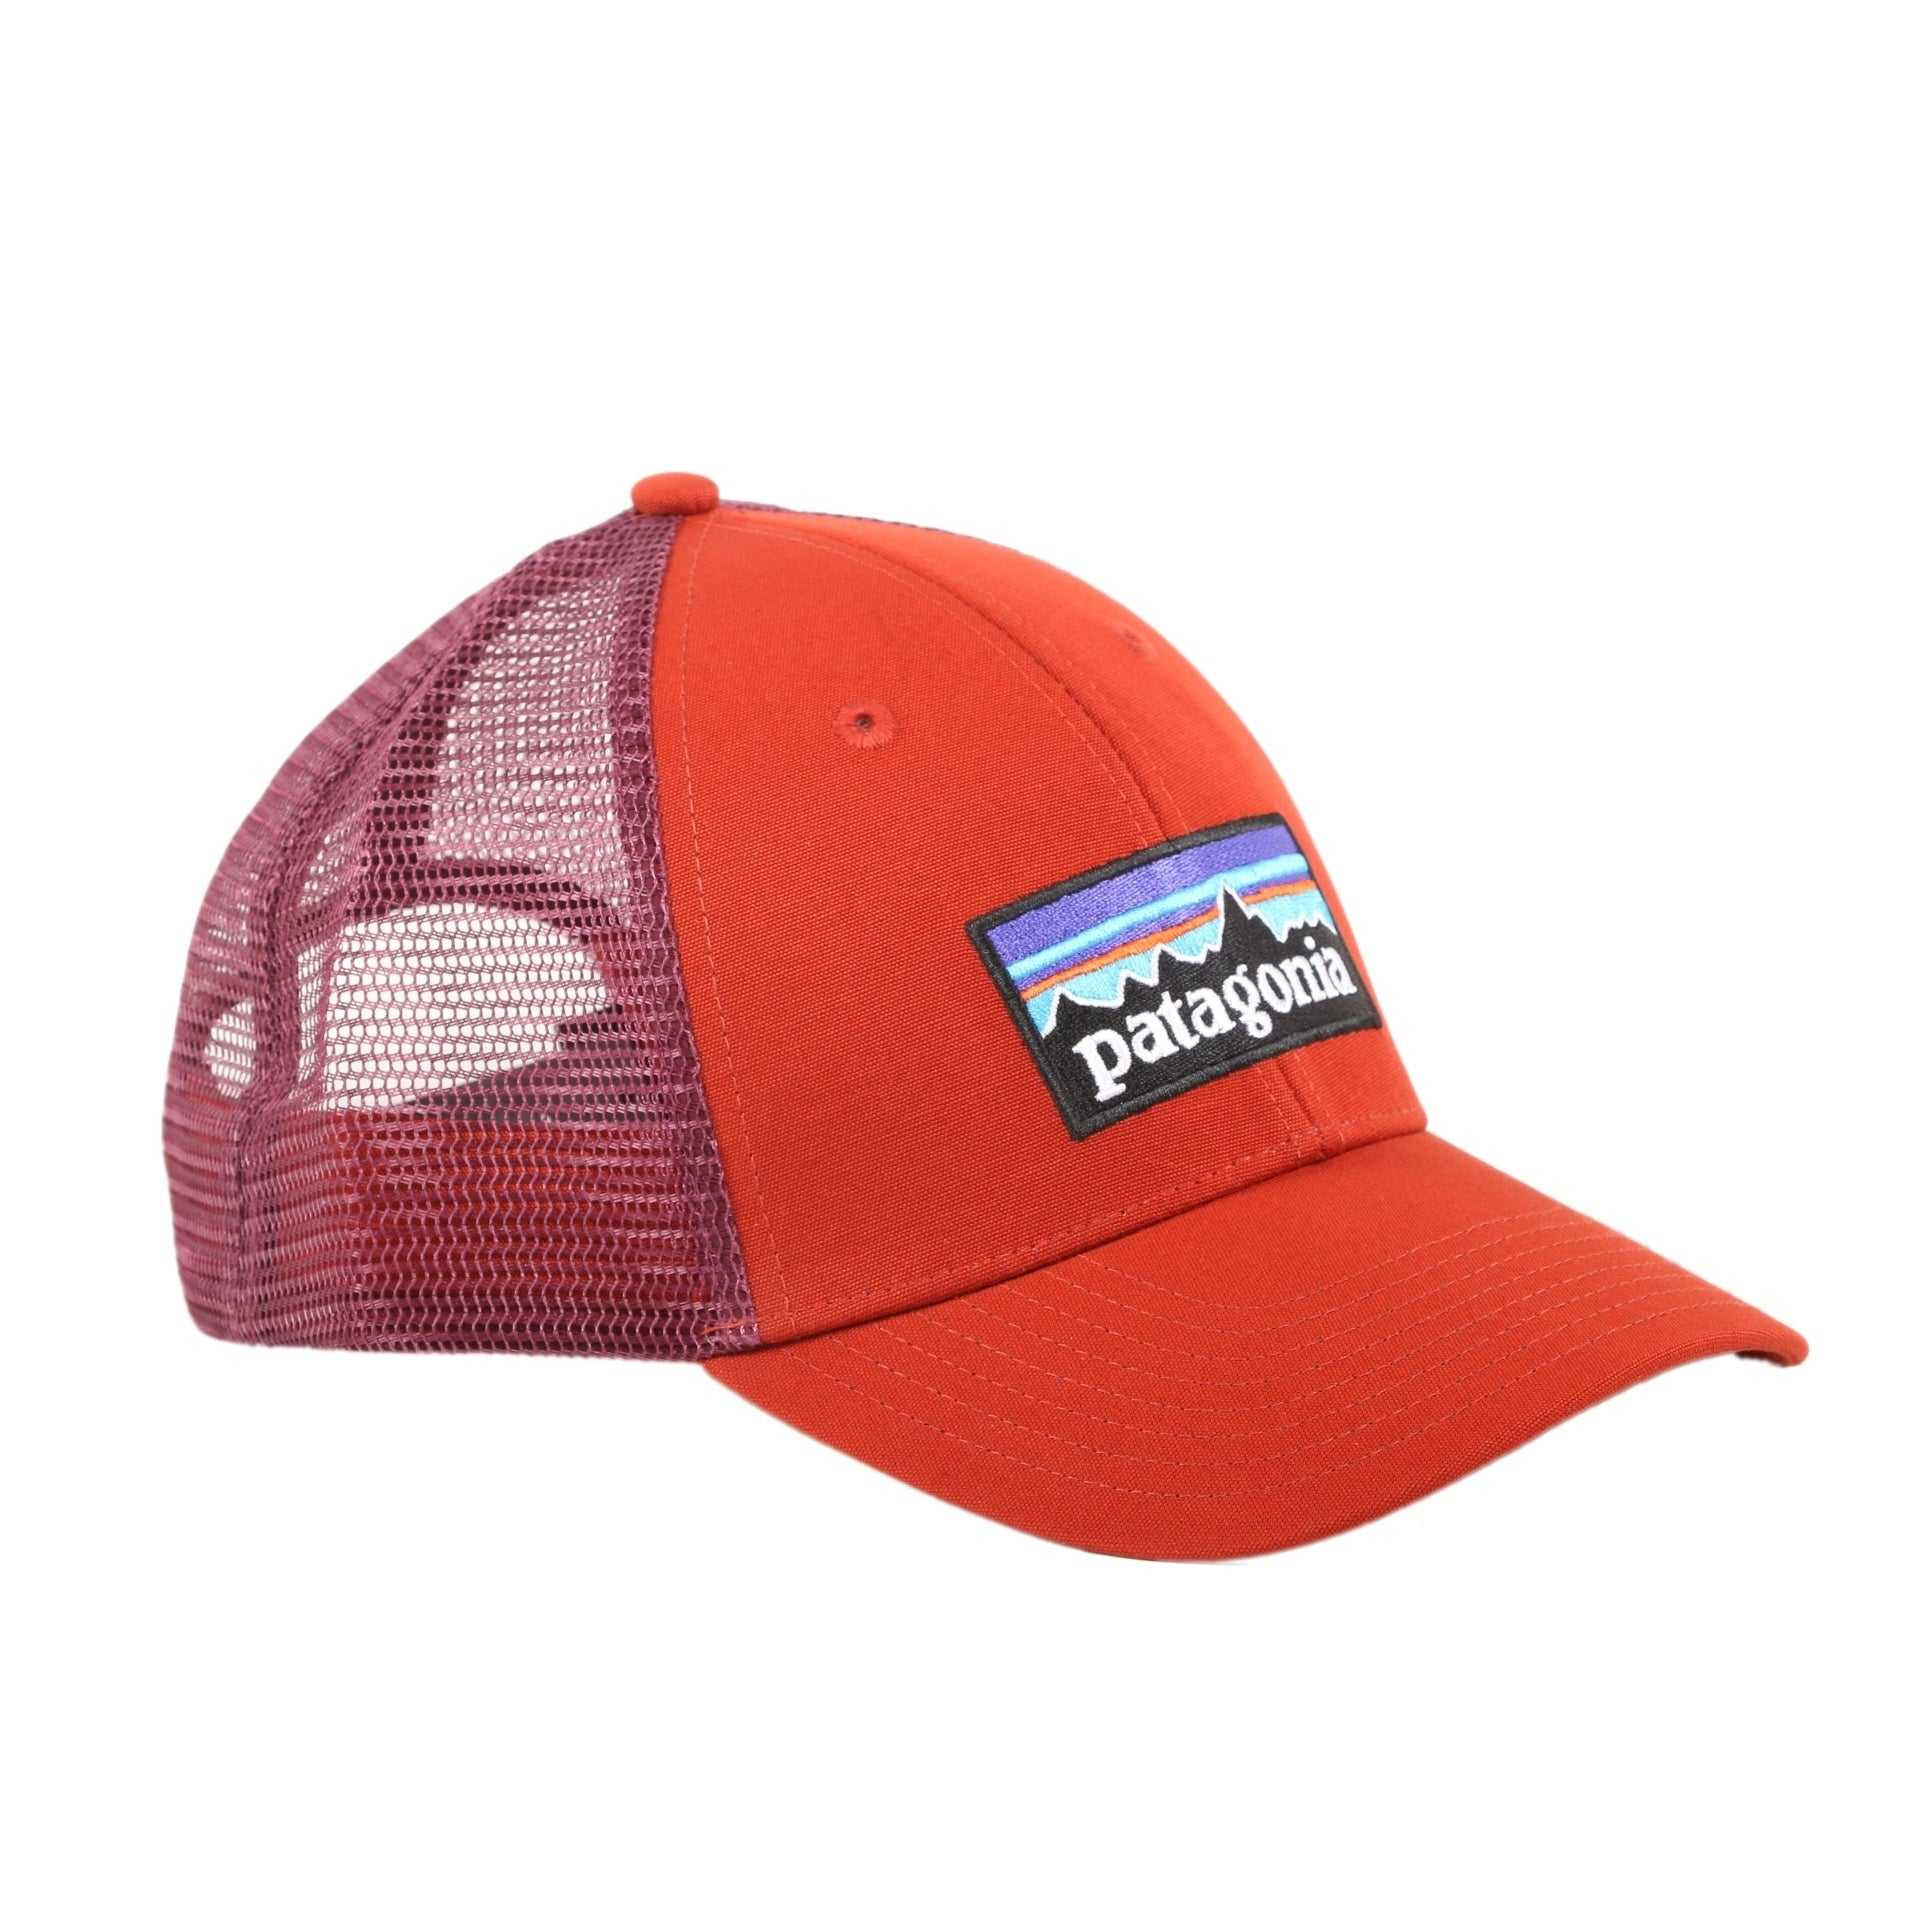 445251056c8f4 Shop Patagonia P-6 Logo LoPro Trucker Hat - Free Shipping On Orders Over   45 - Overstock - 18904996